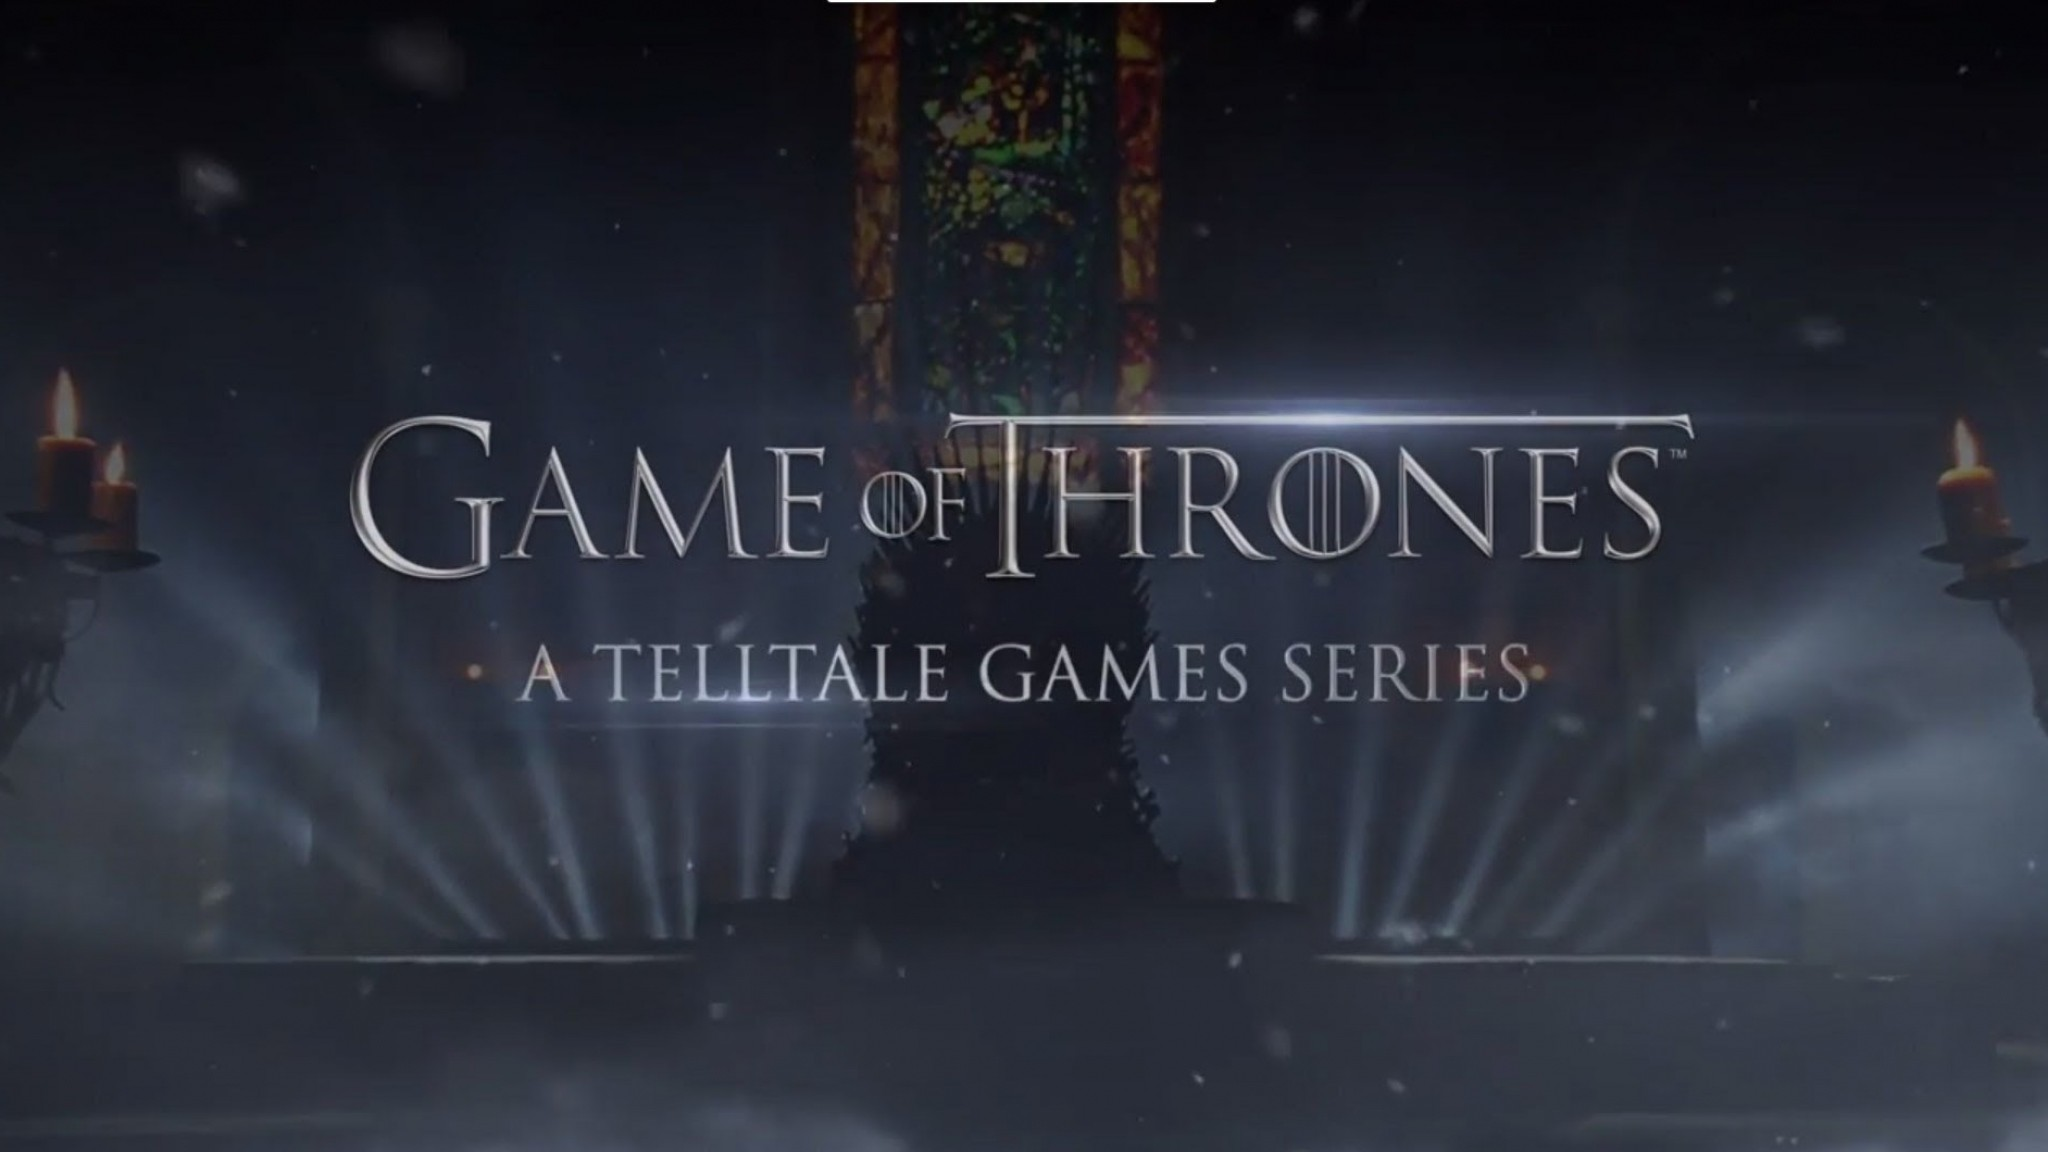 Wallpaper game of thrones a telltale games series, macos, mobile,  pc,